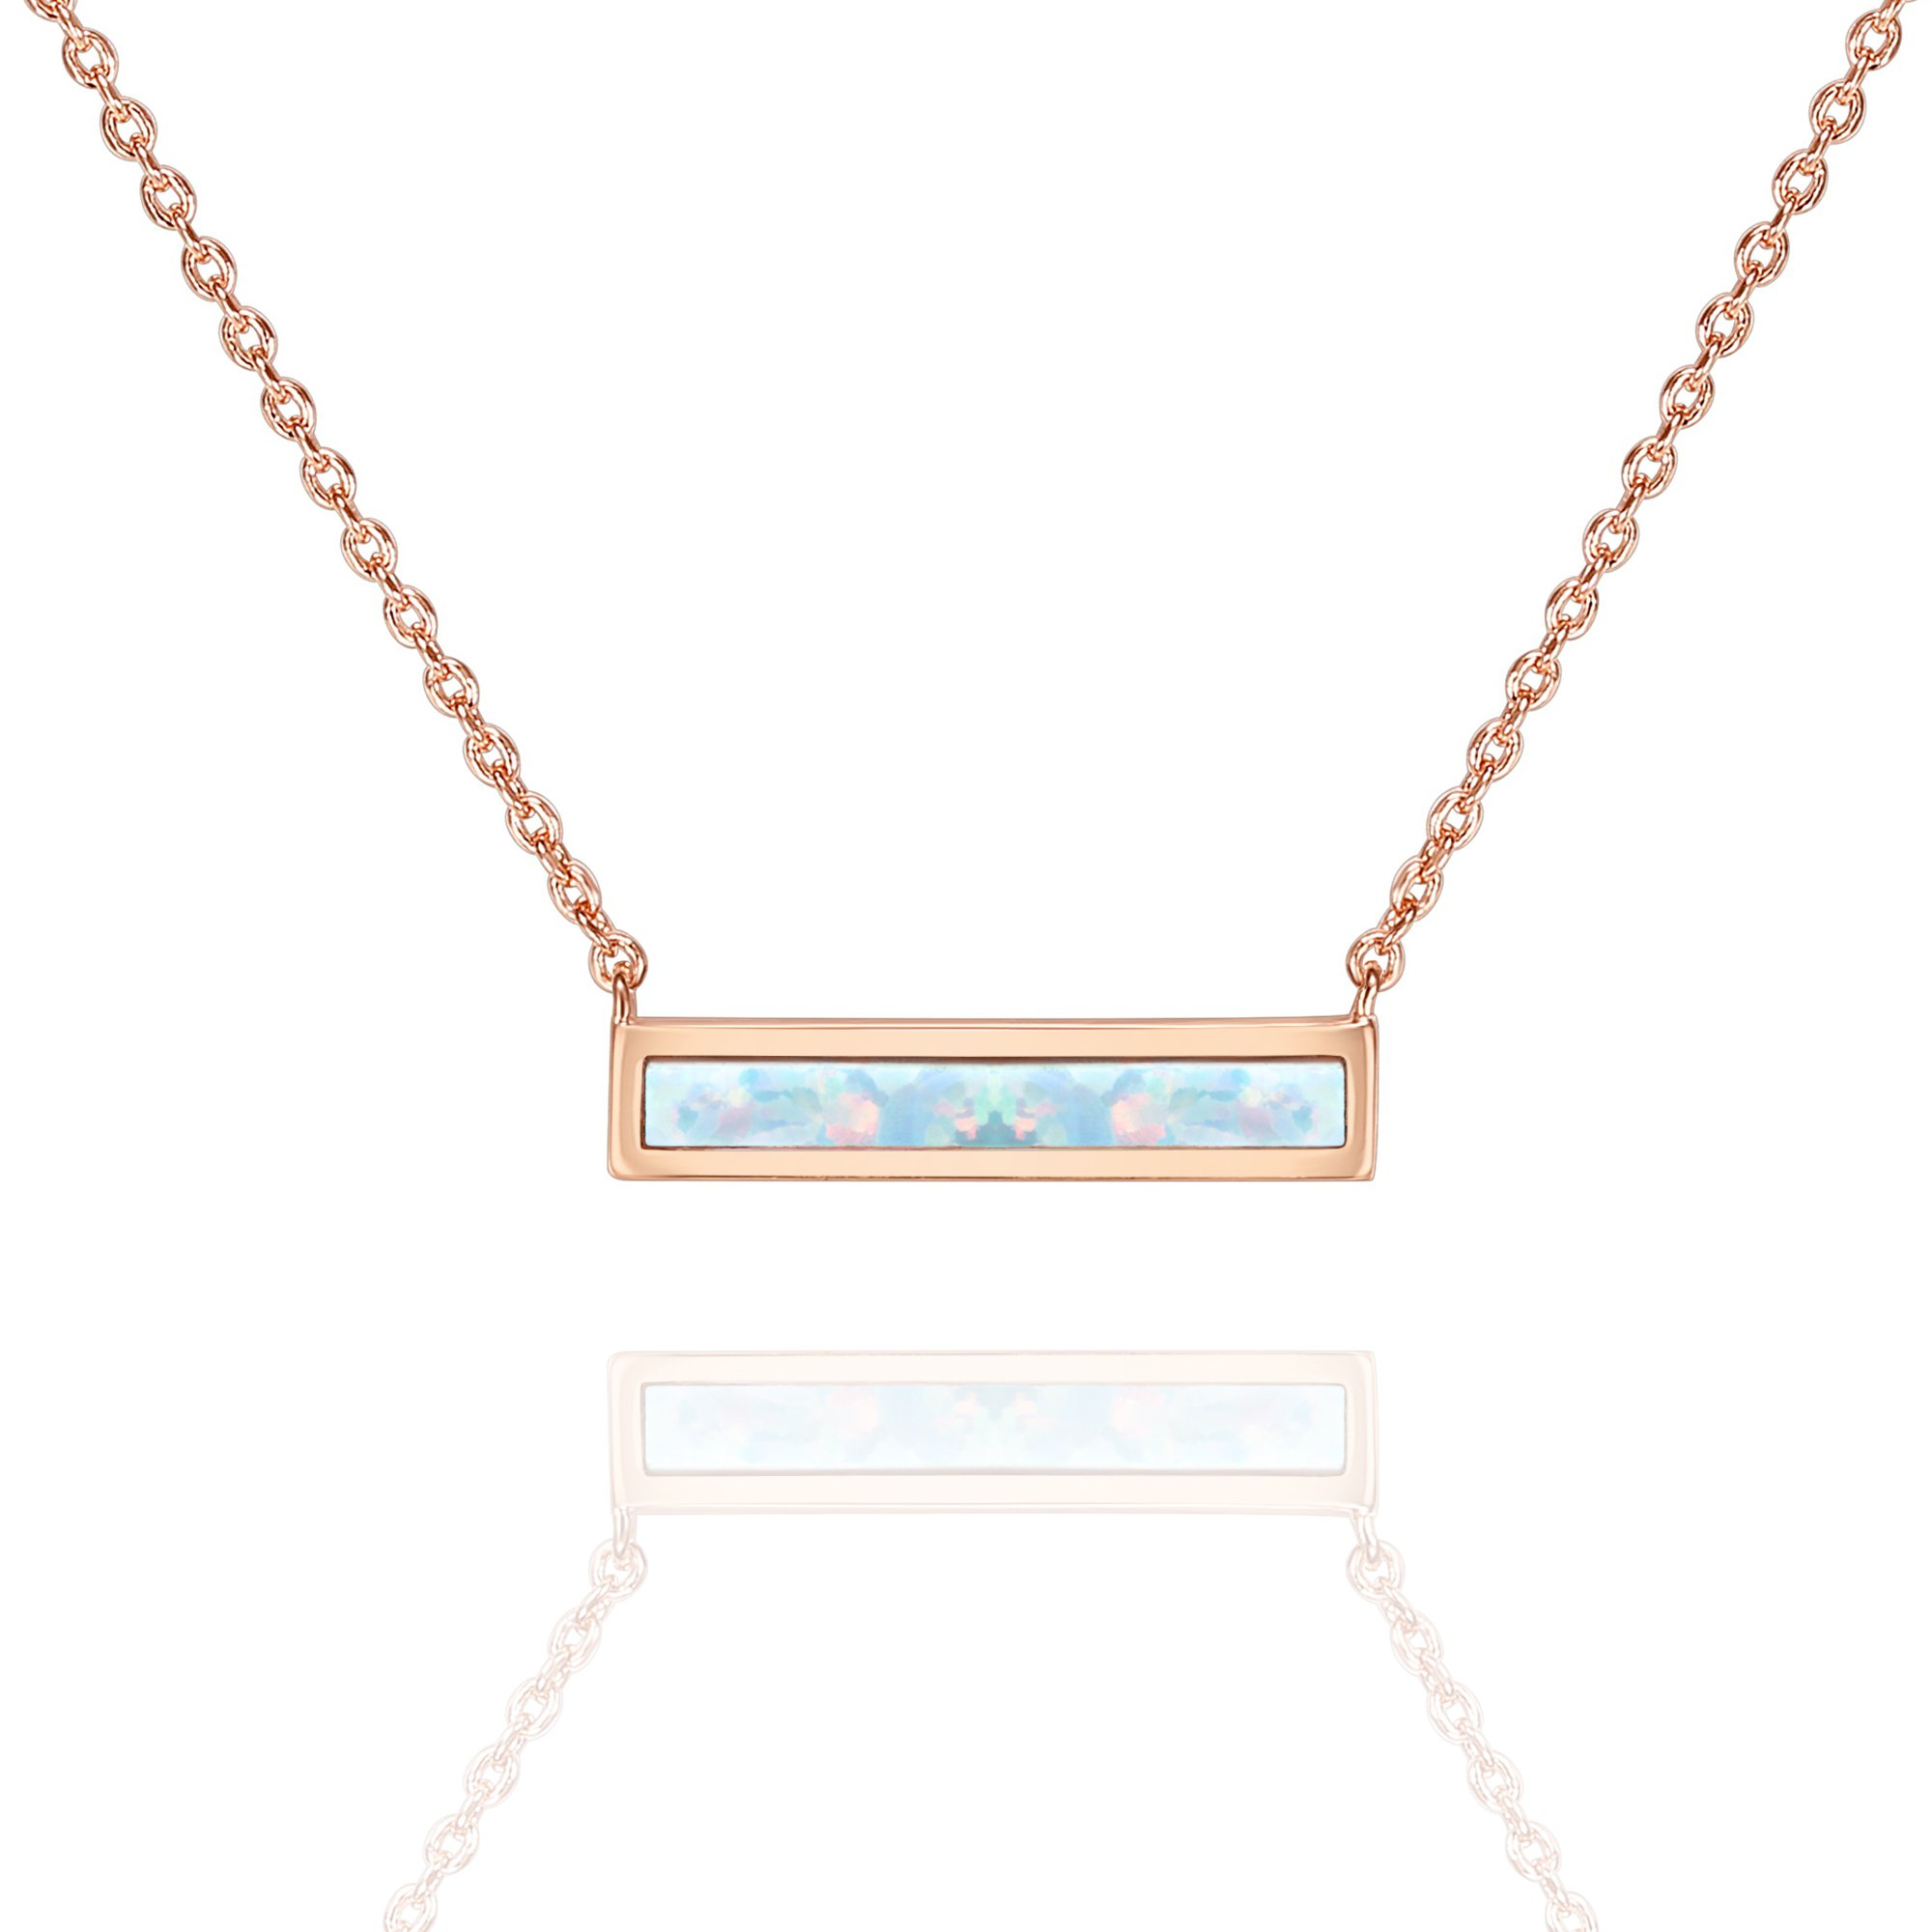 PAVOI 14K Rose Gold Plated Thin Bar White Opal Necklace 16-18